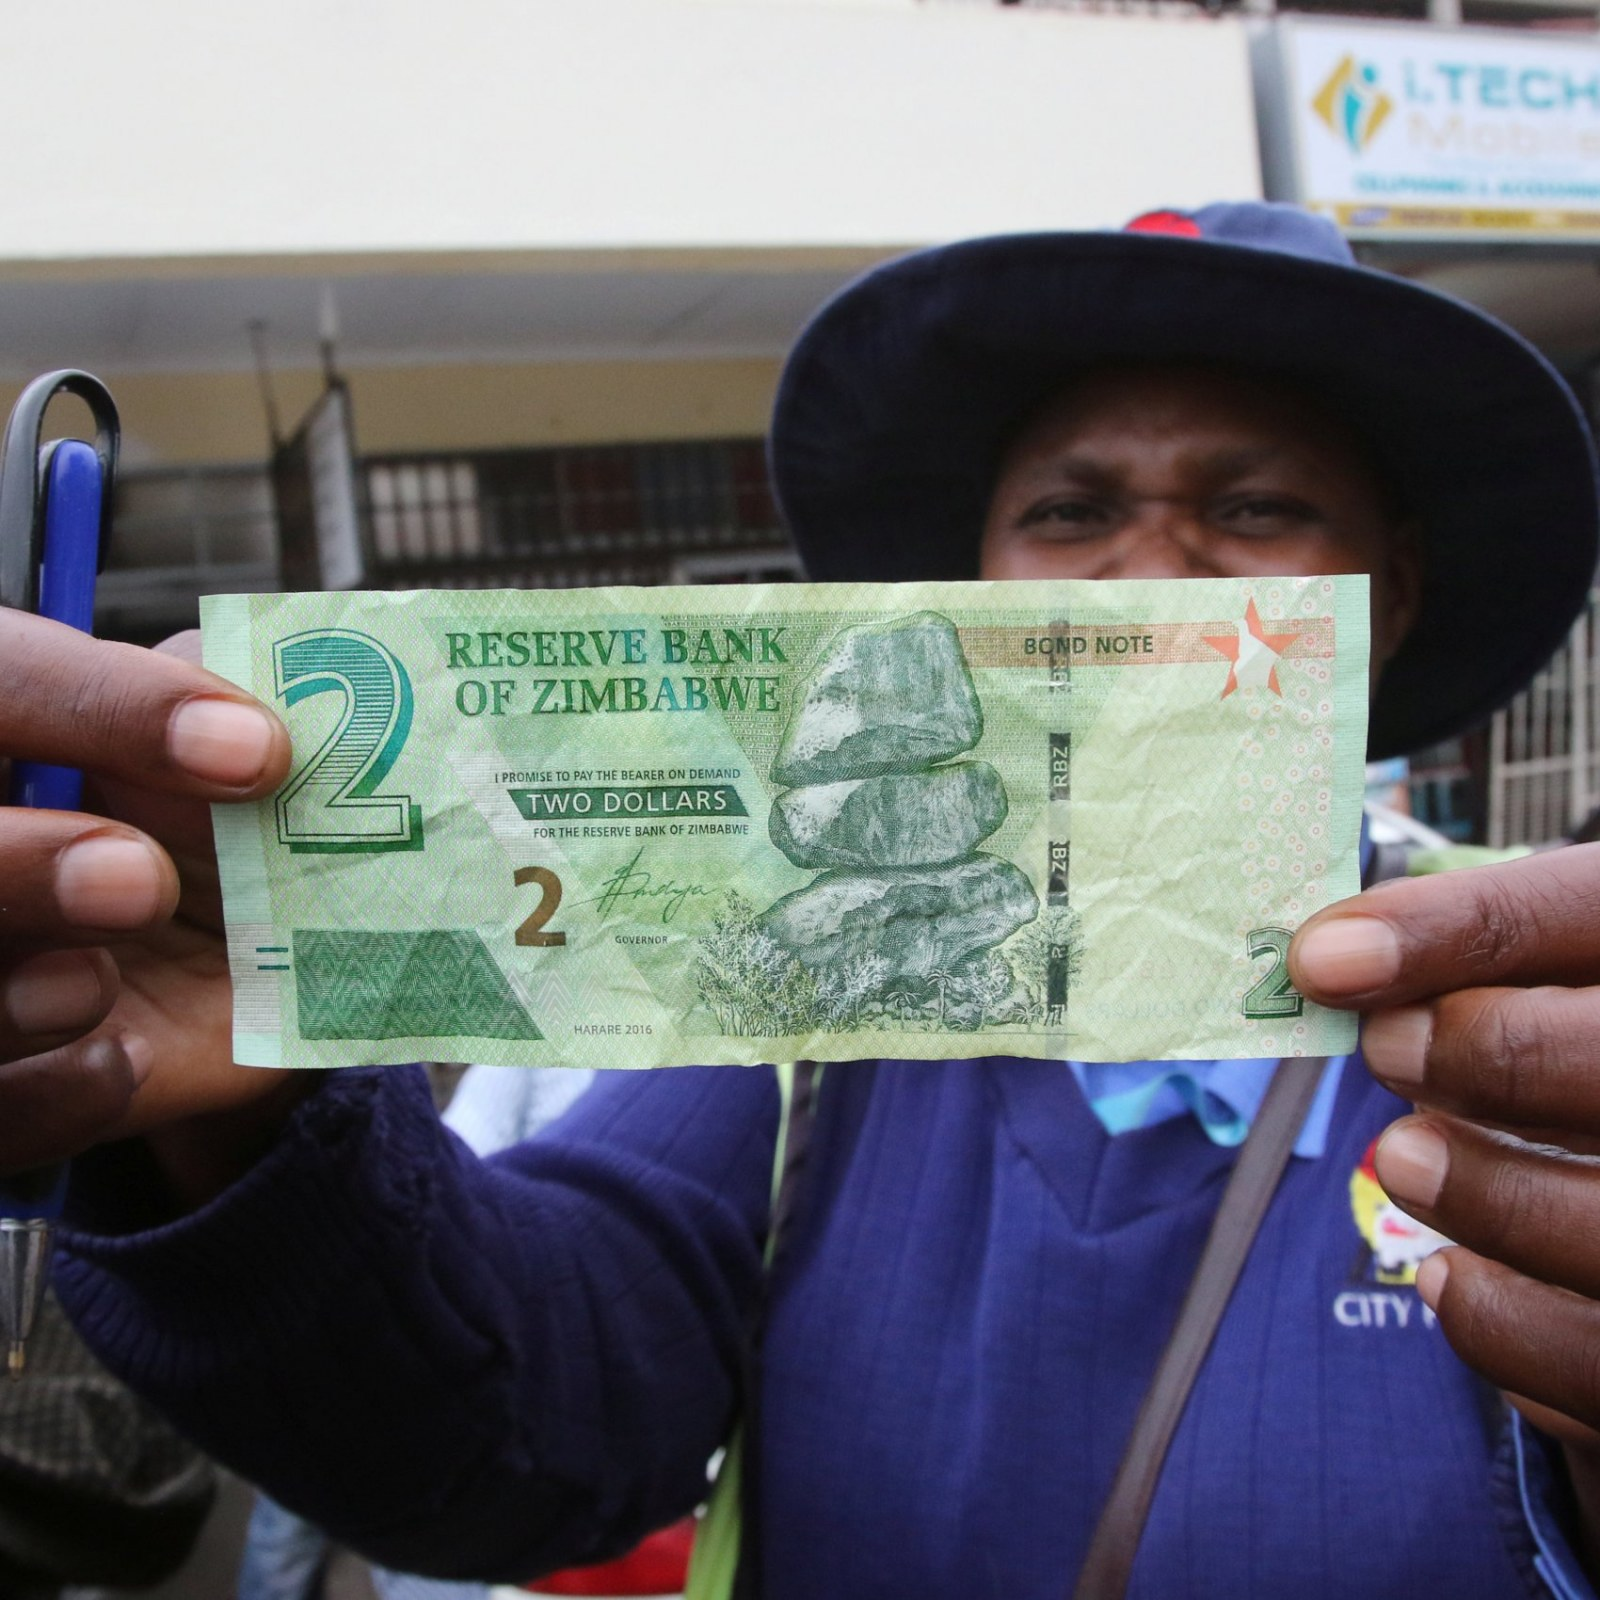 What You Should Know About Bond Notes